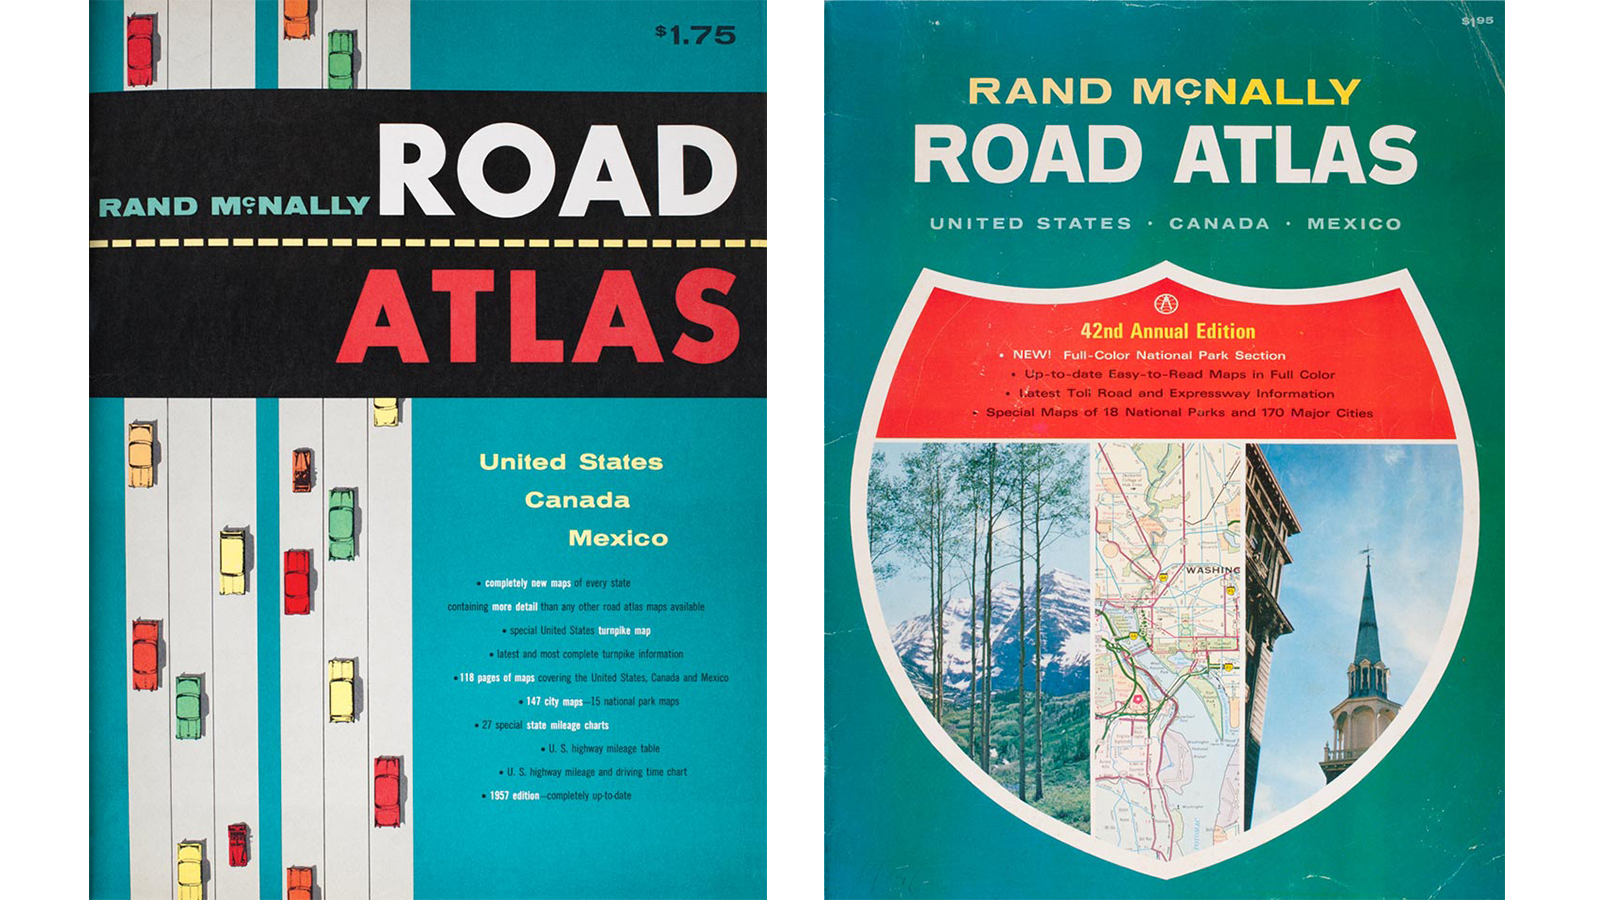 Rand McNally vintage atlases map the great American road ... on illinois county map, illinois dot construction map, illinois interstate highway map, illinois airports map, illinois tollway map 294, illinois tolls rates map, illinois road atlas, illinois us 66 maps,